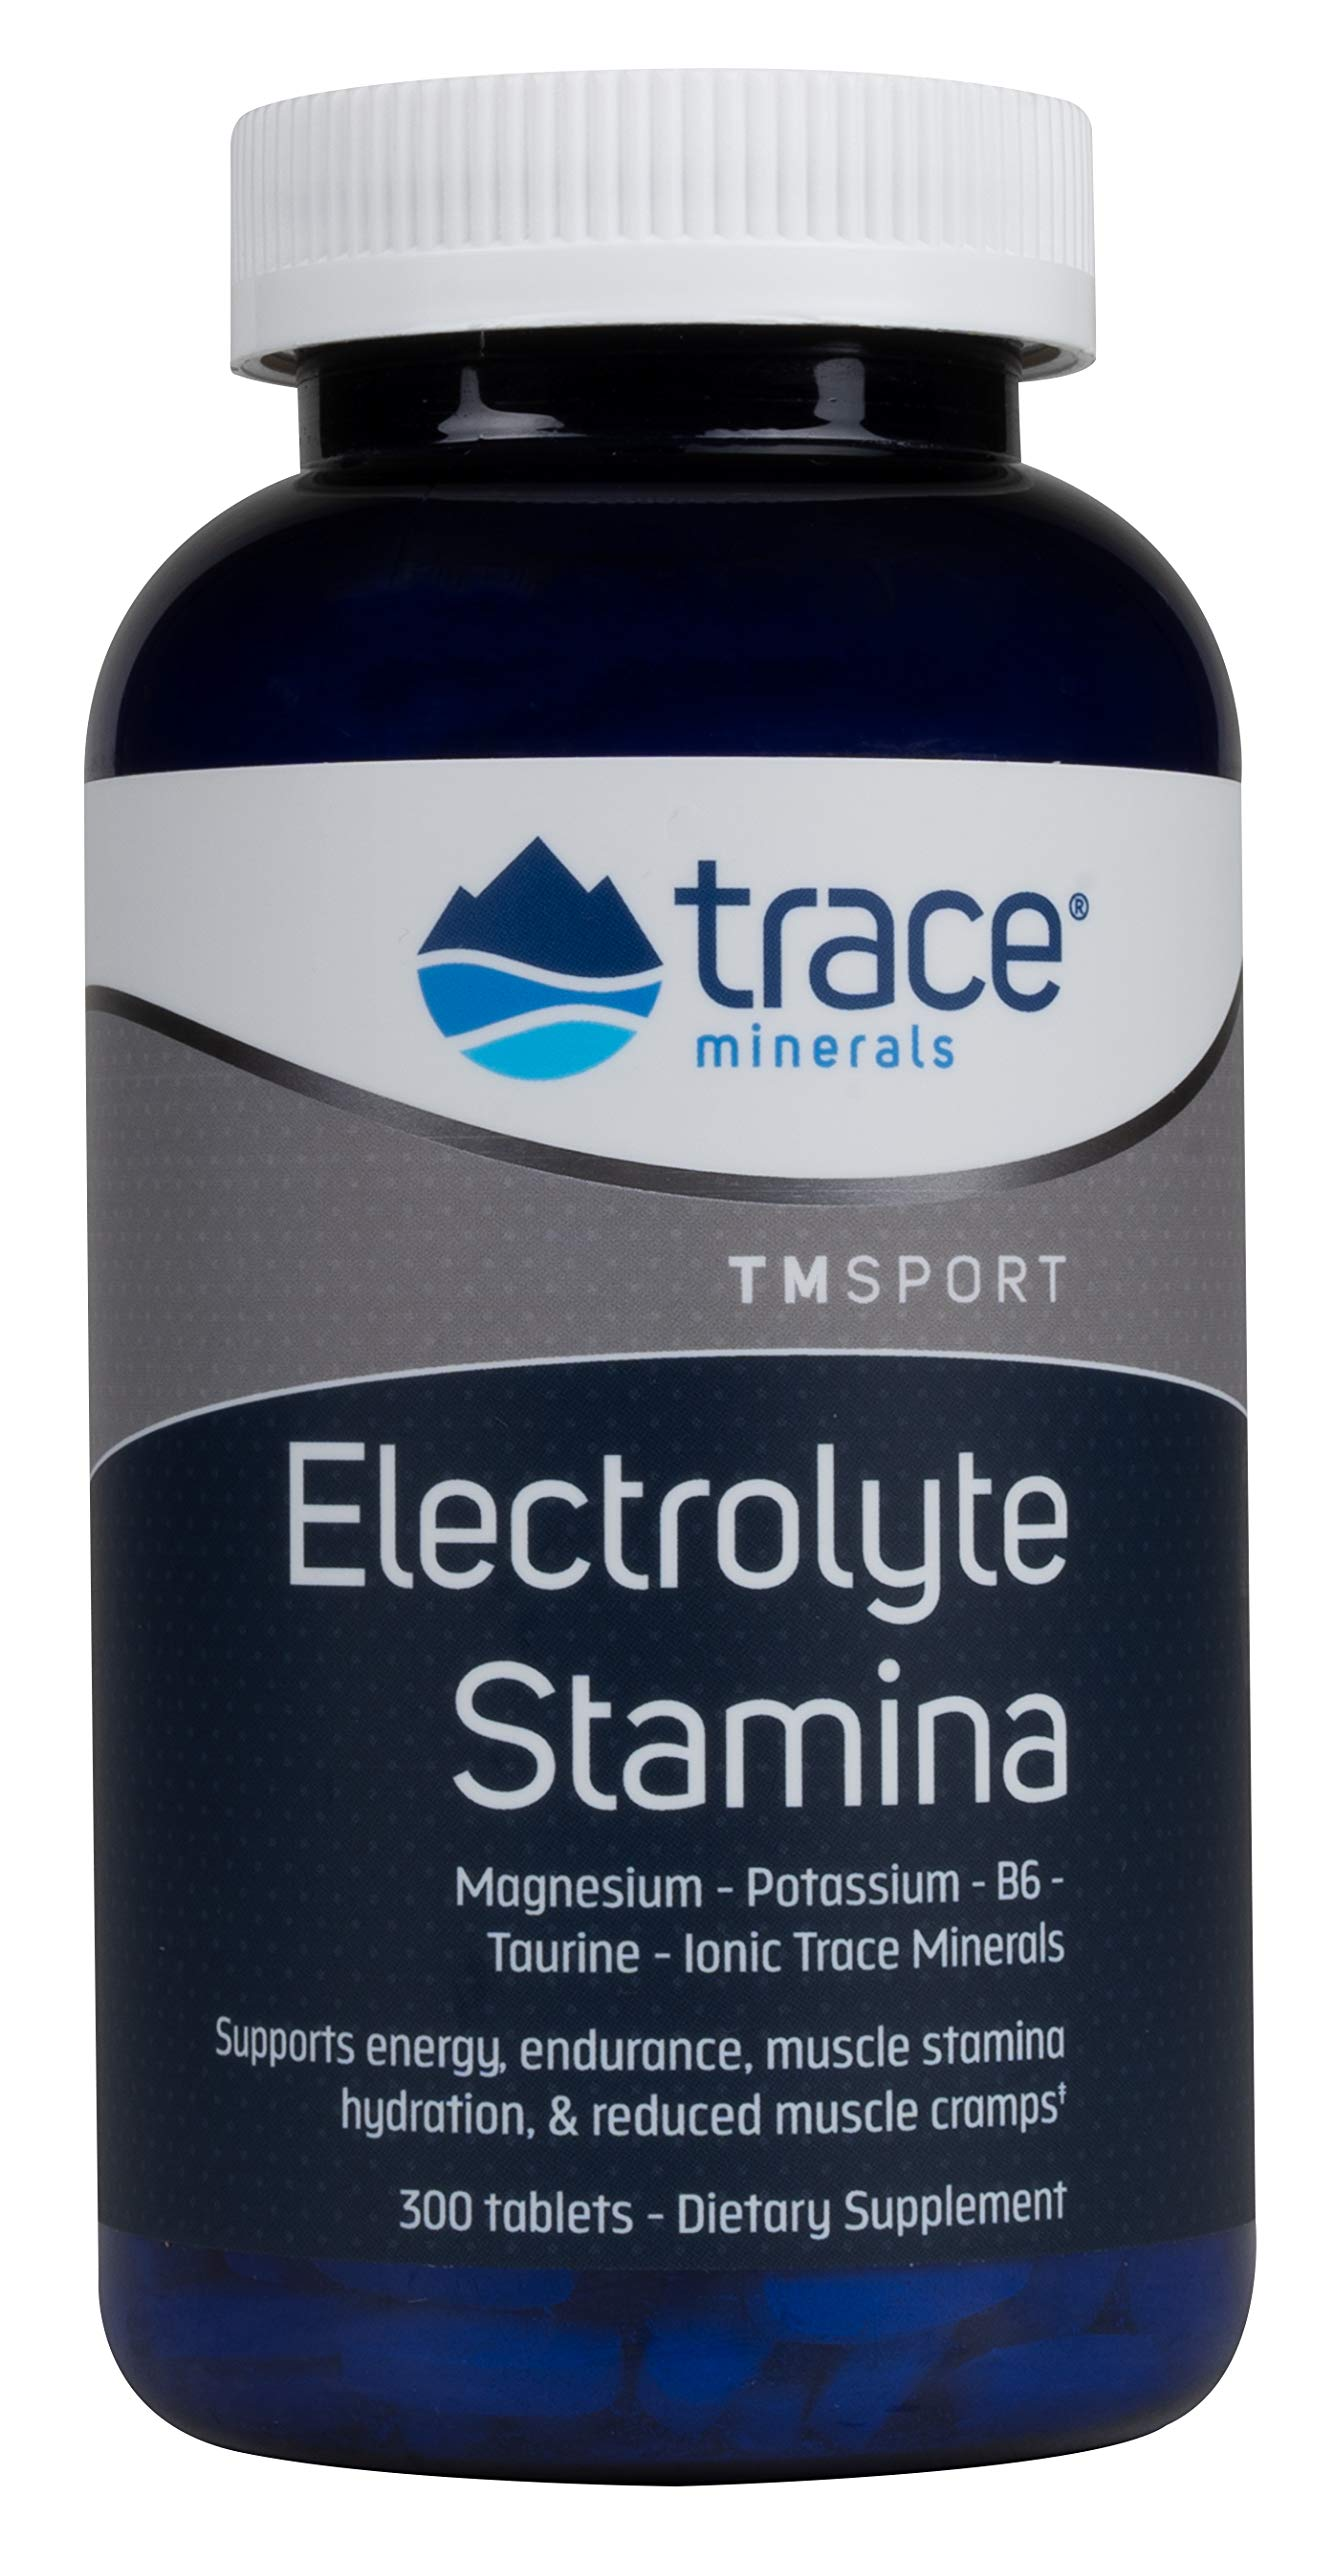 Trace Minerals Research Performance Electrolyte Stamina, High Performance Energy Formula of Balanced Ionic Minerals,